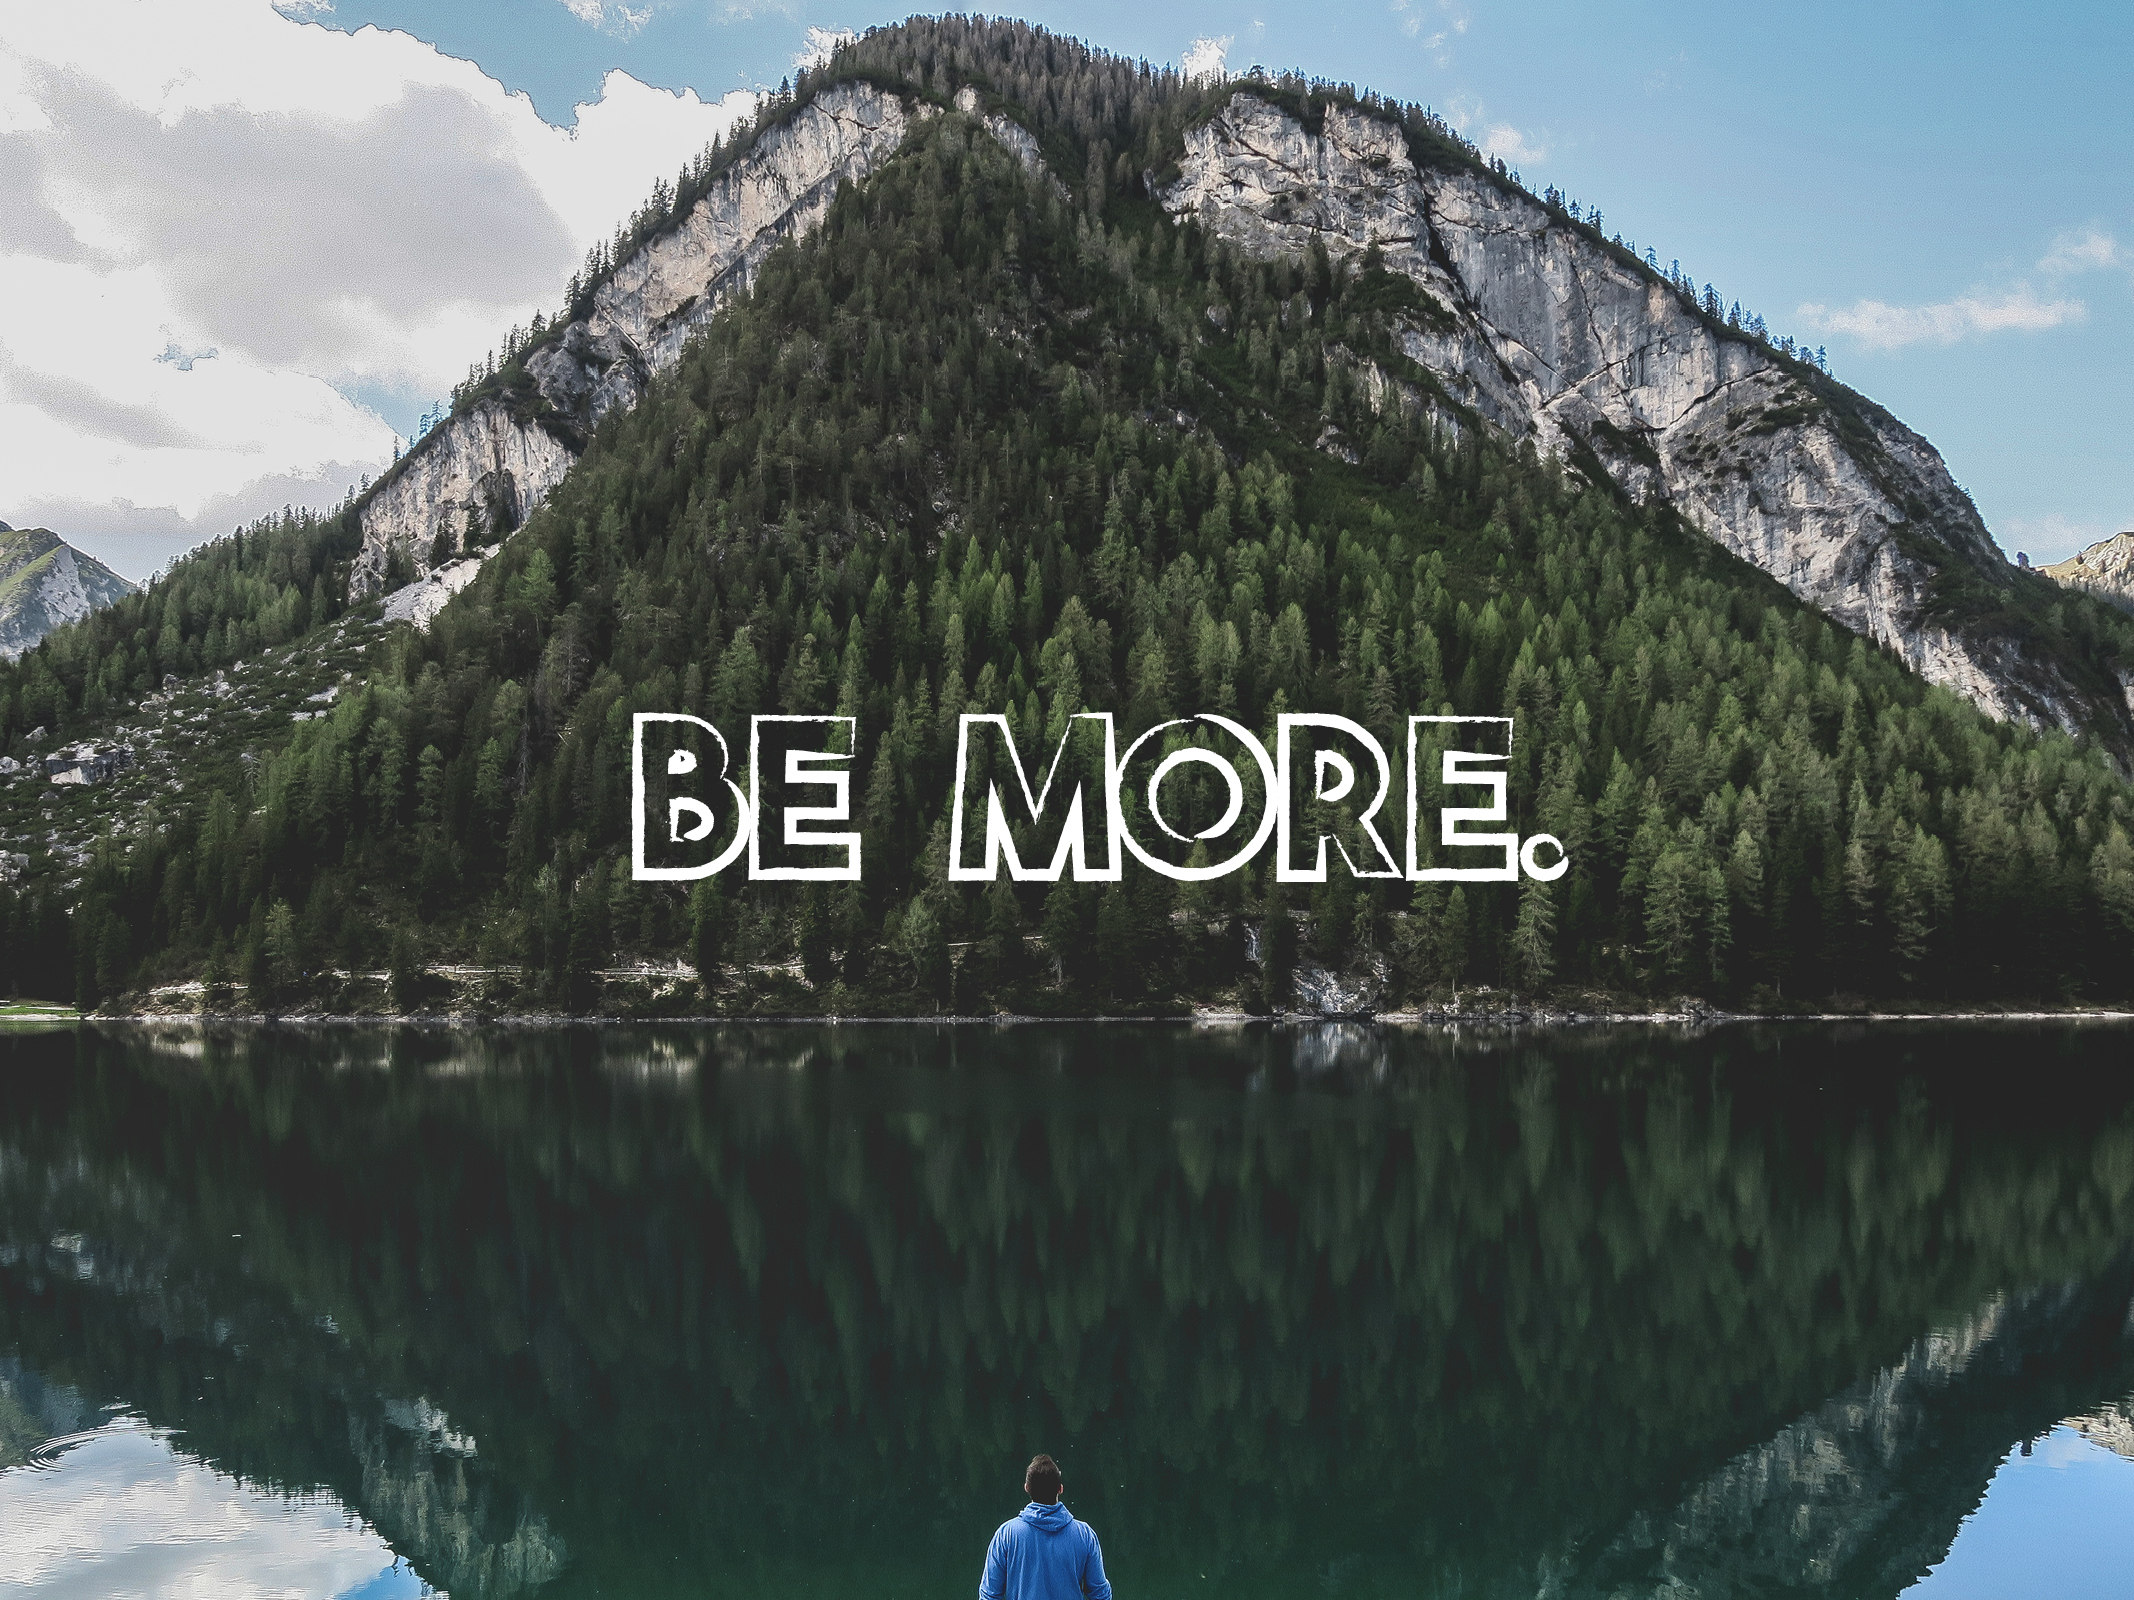 Be More.